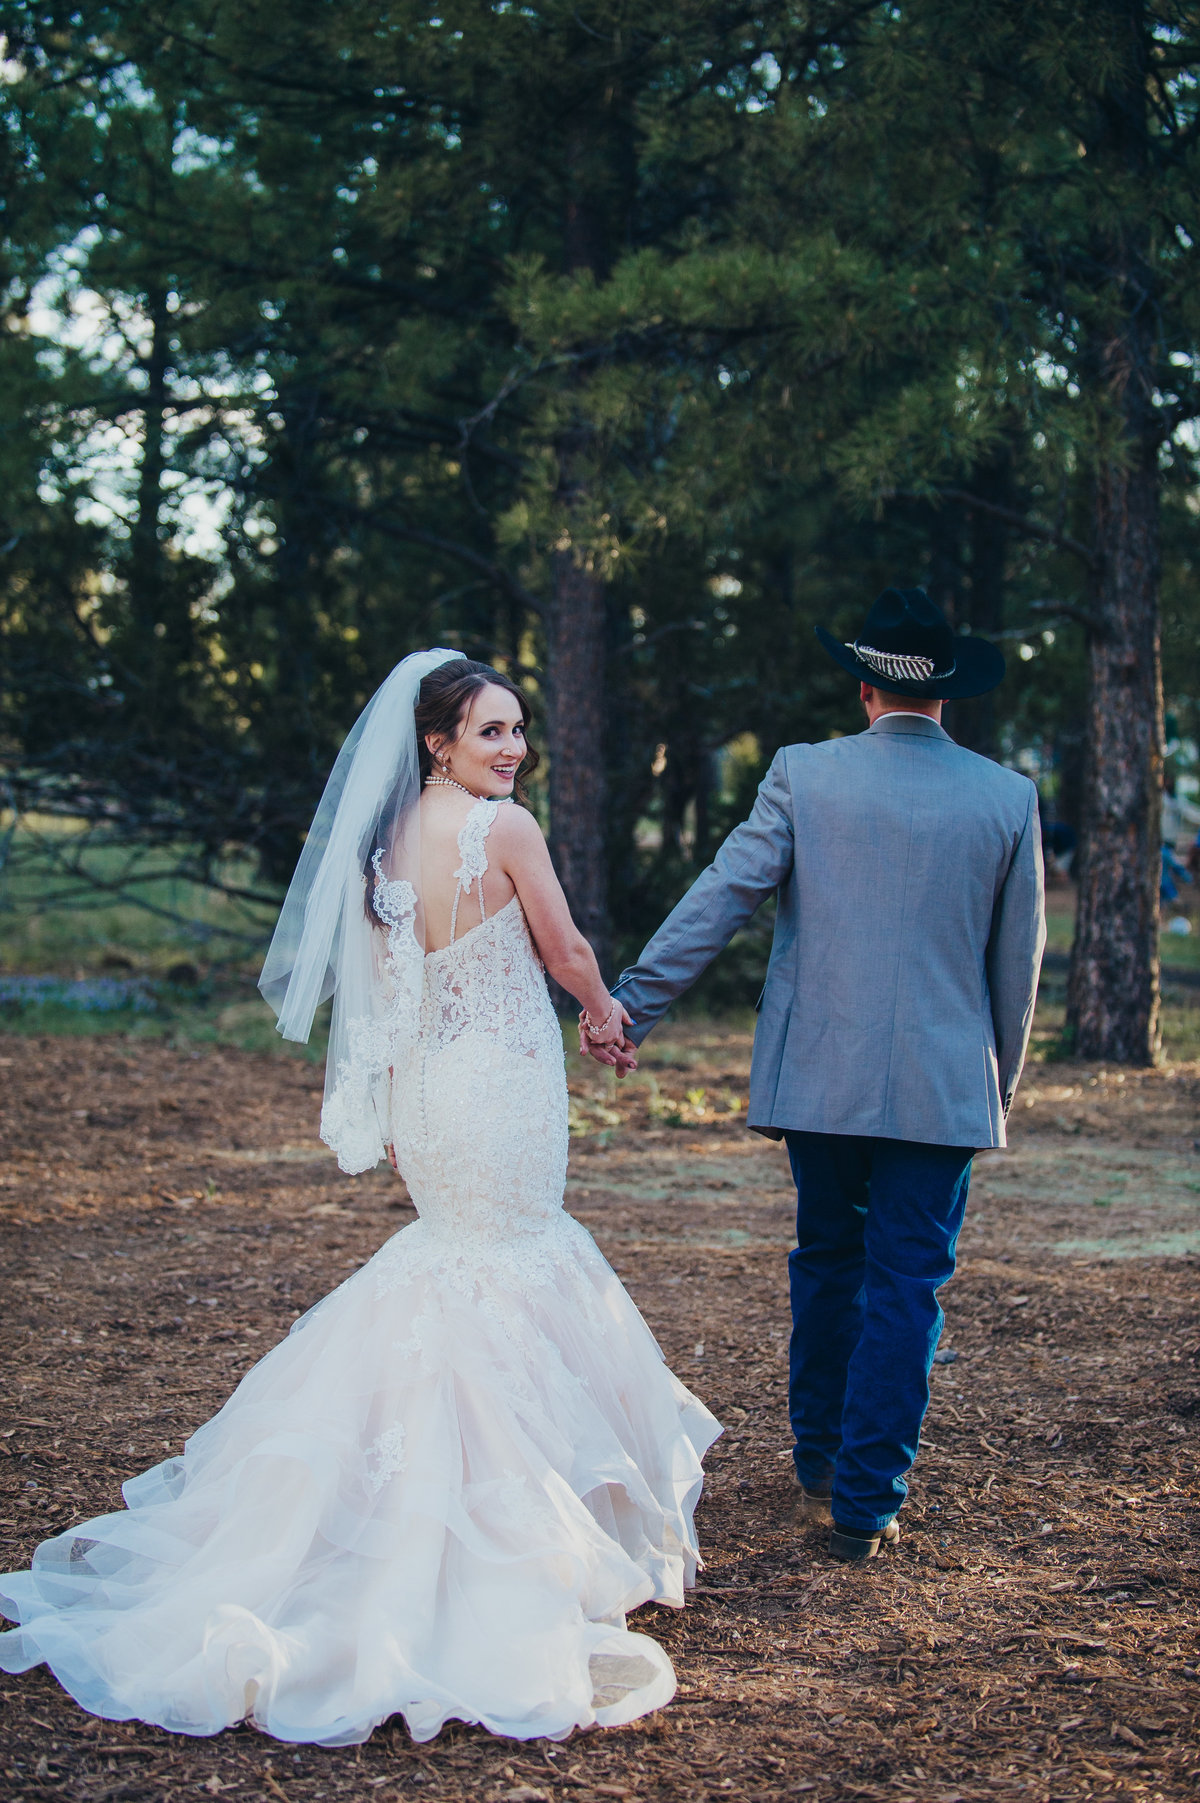 A couples wedding in Flagstaff, Arizona